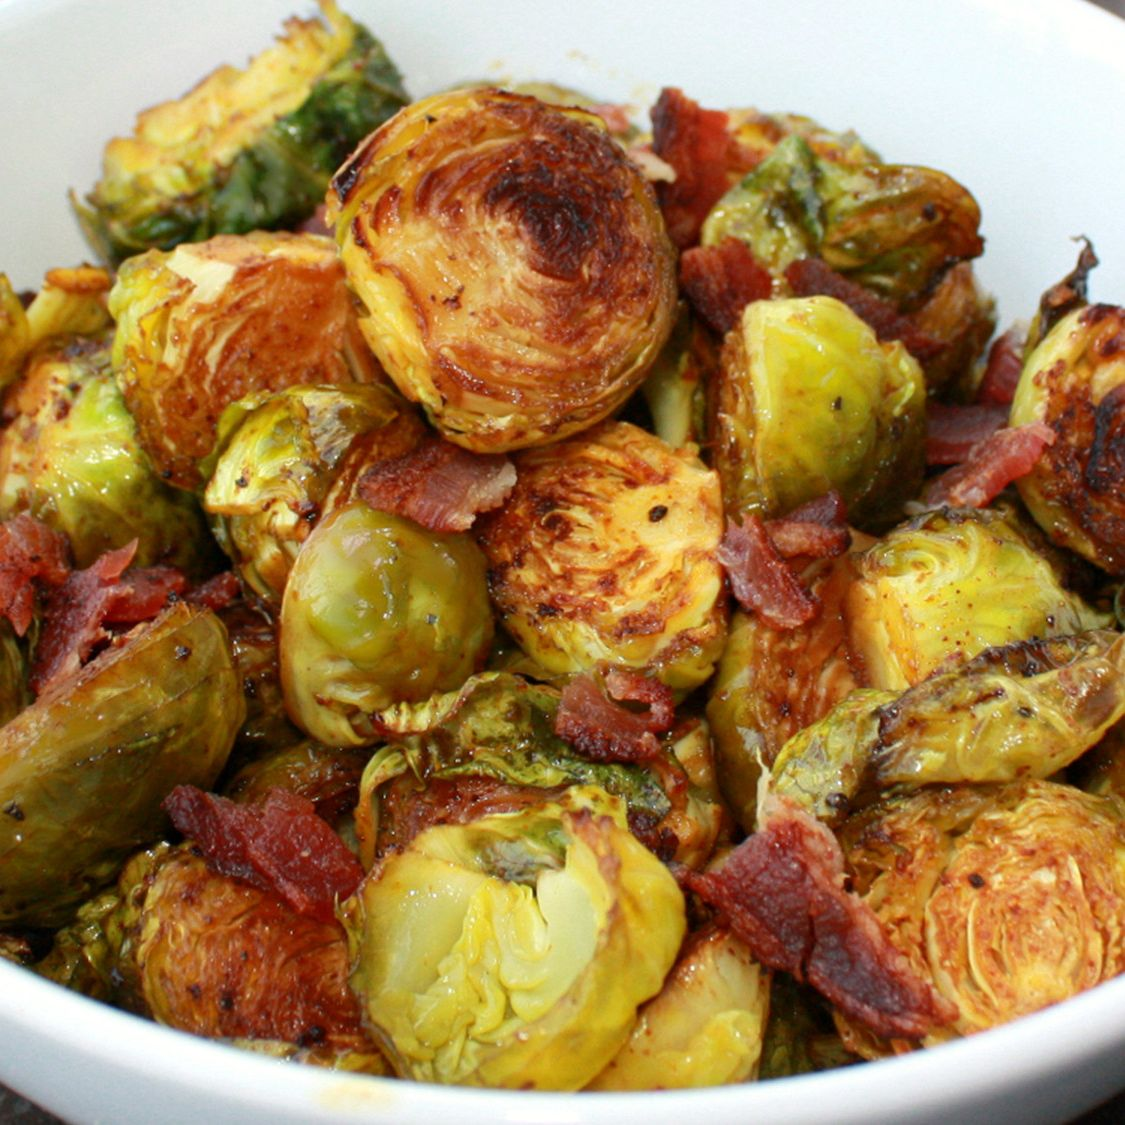 roasted_brussel_sprouts_with_bacon.jpg